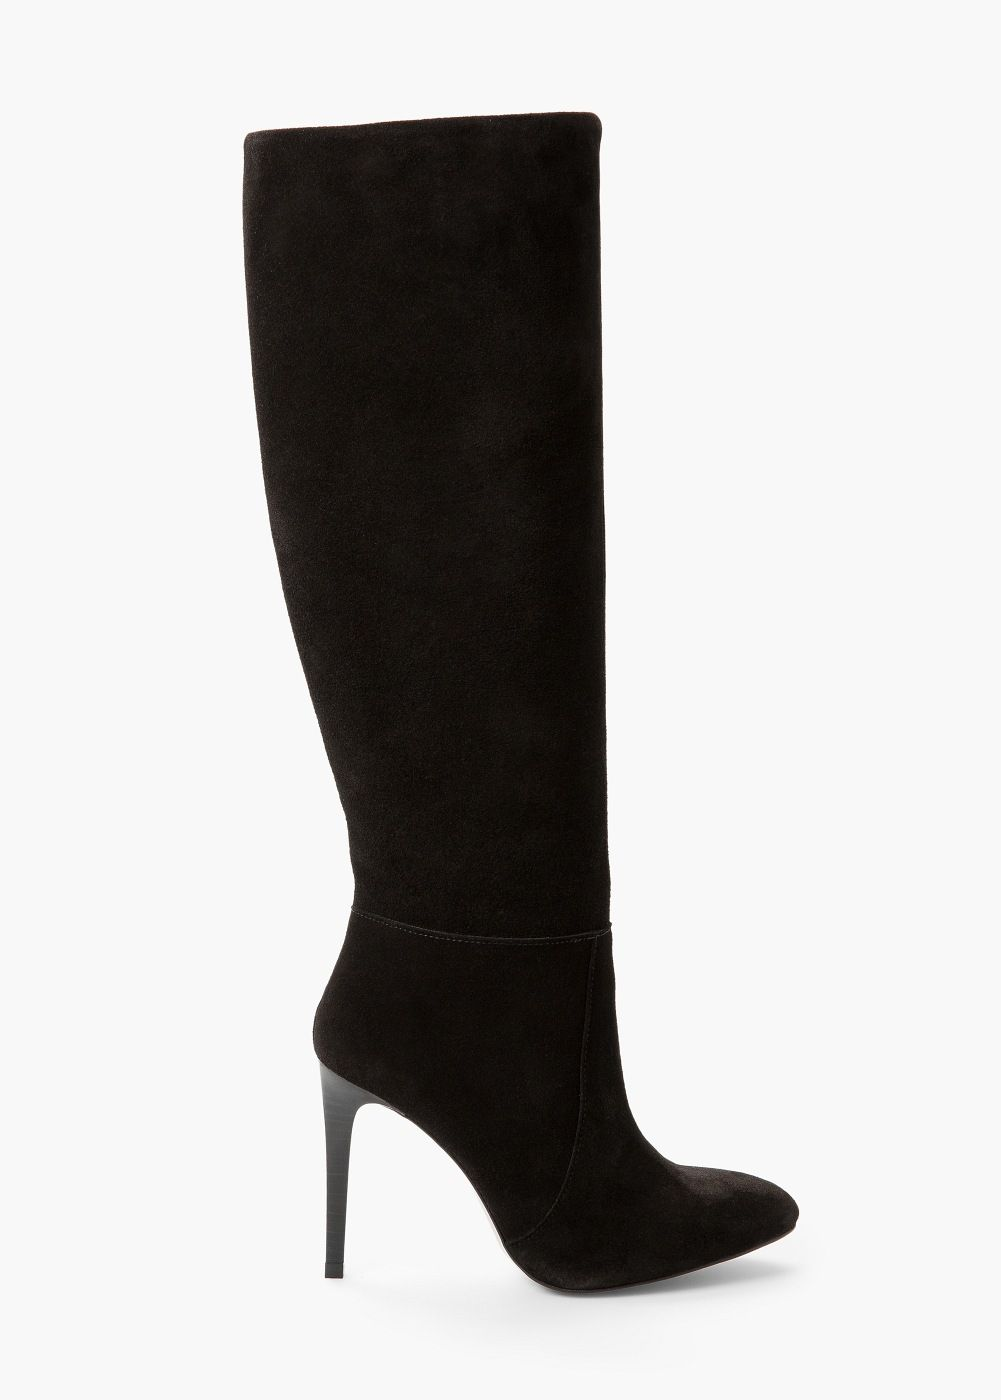 45f3f354aae4 High-leg suede boots - Shoes for Women